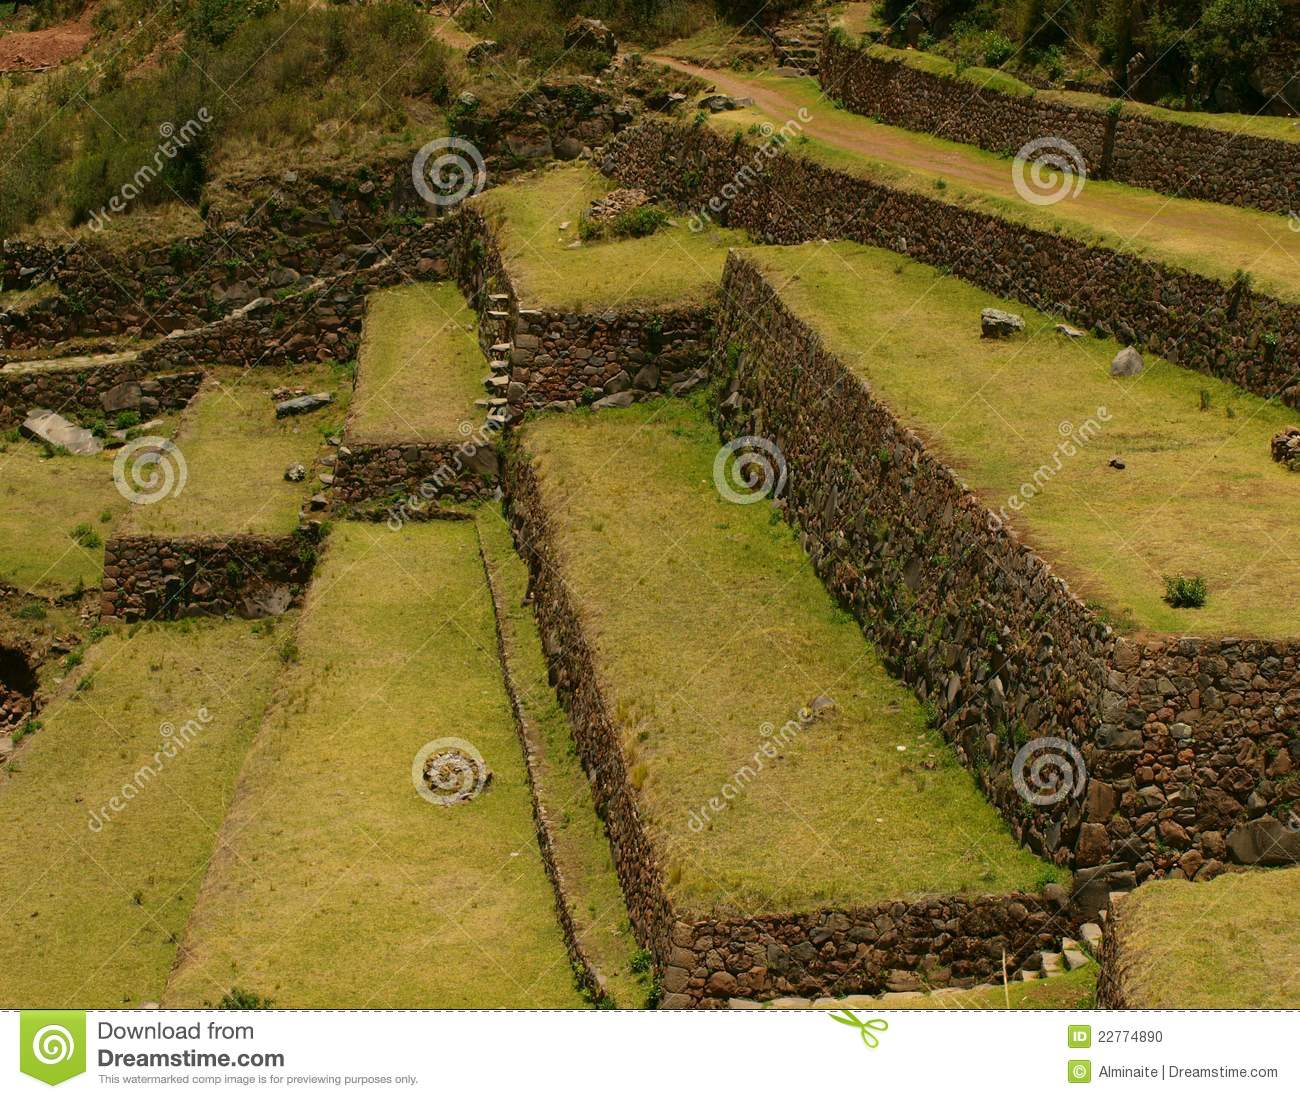 Inca Agriculture Terraces Stock Photo - Image: 22774890